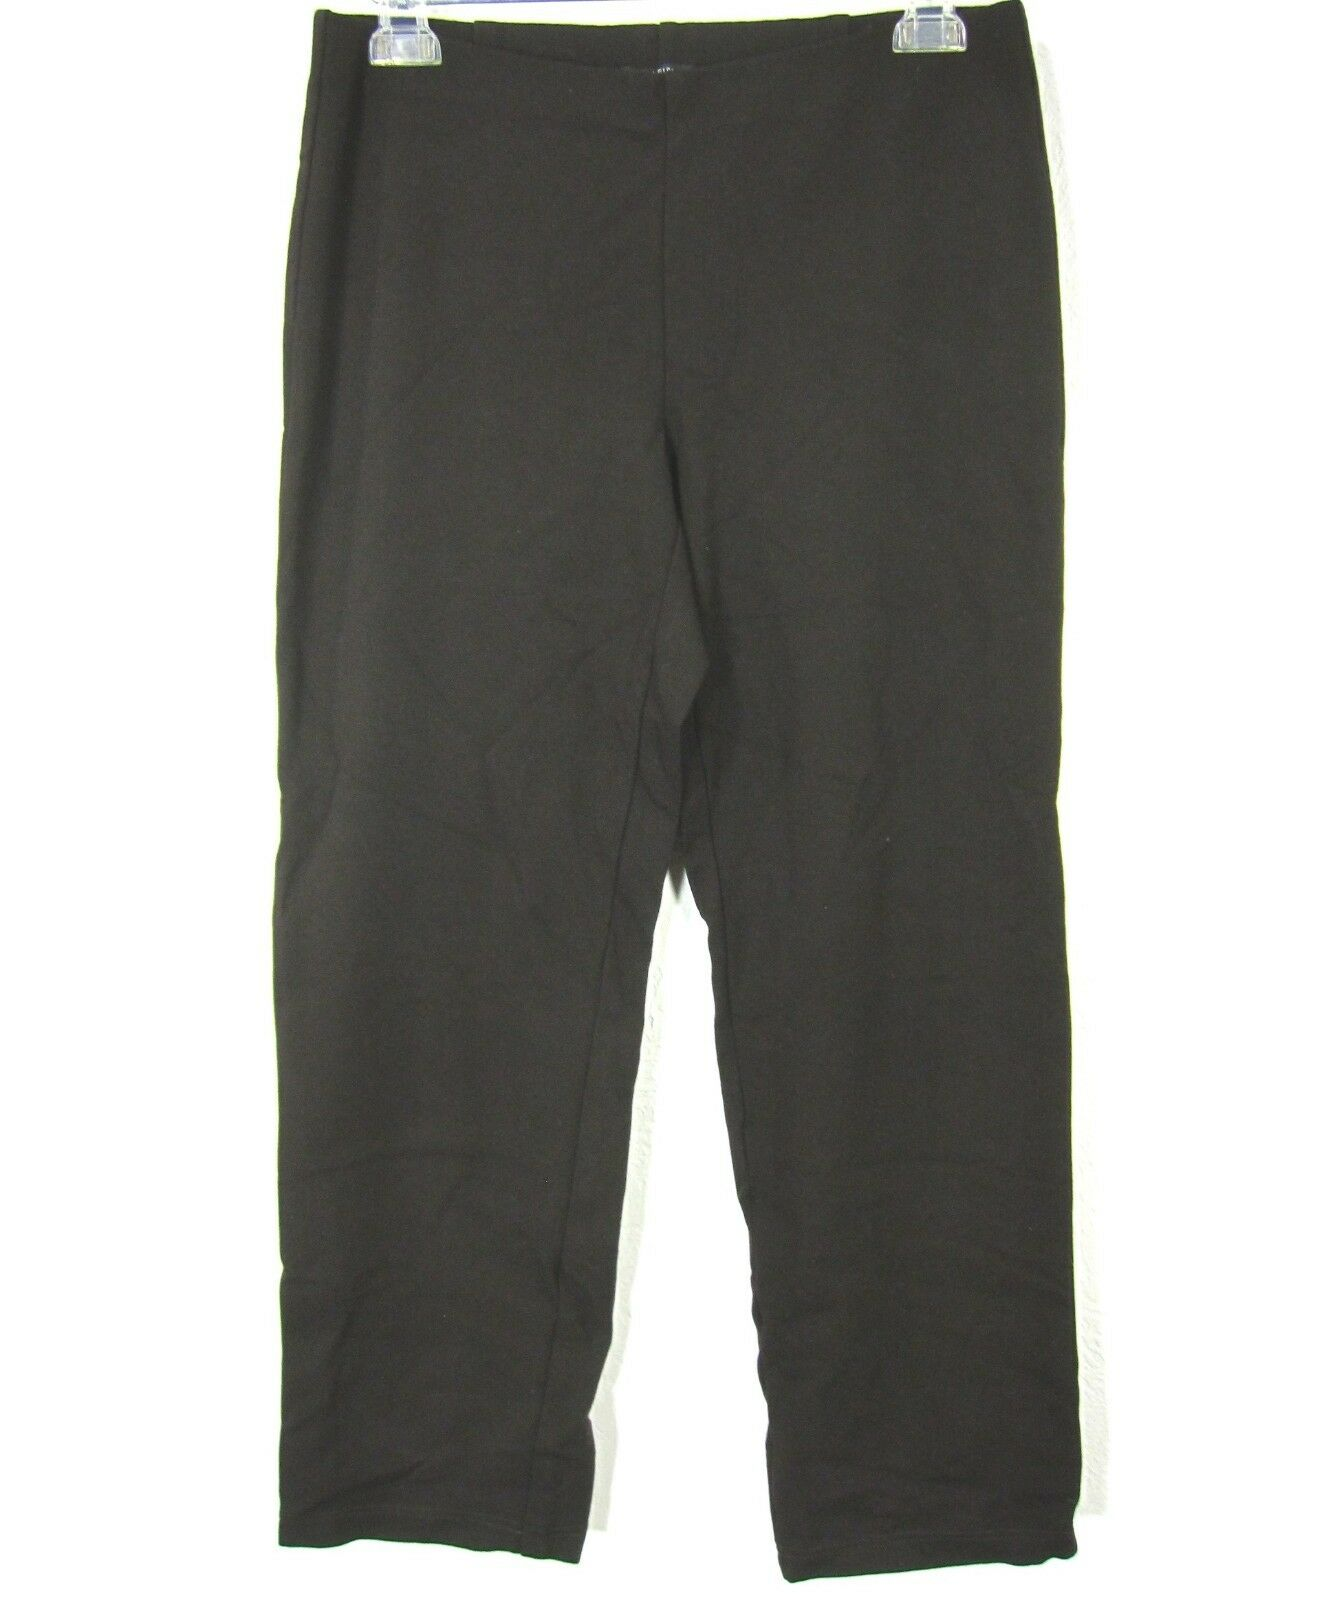 EILEEN FISHER Elastic Waist Pant Size S Small Solid Brown Casual Comfort